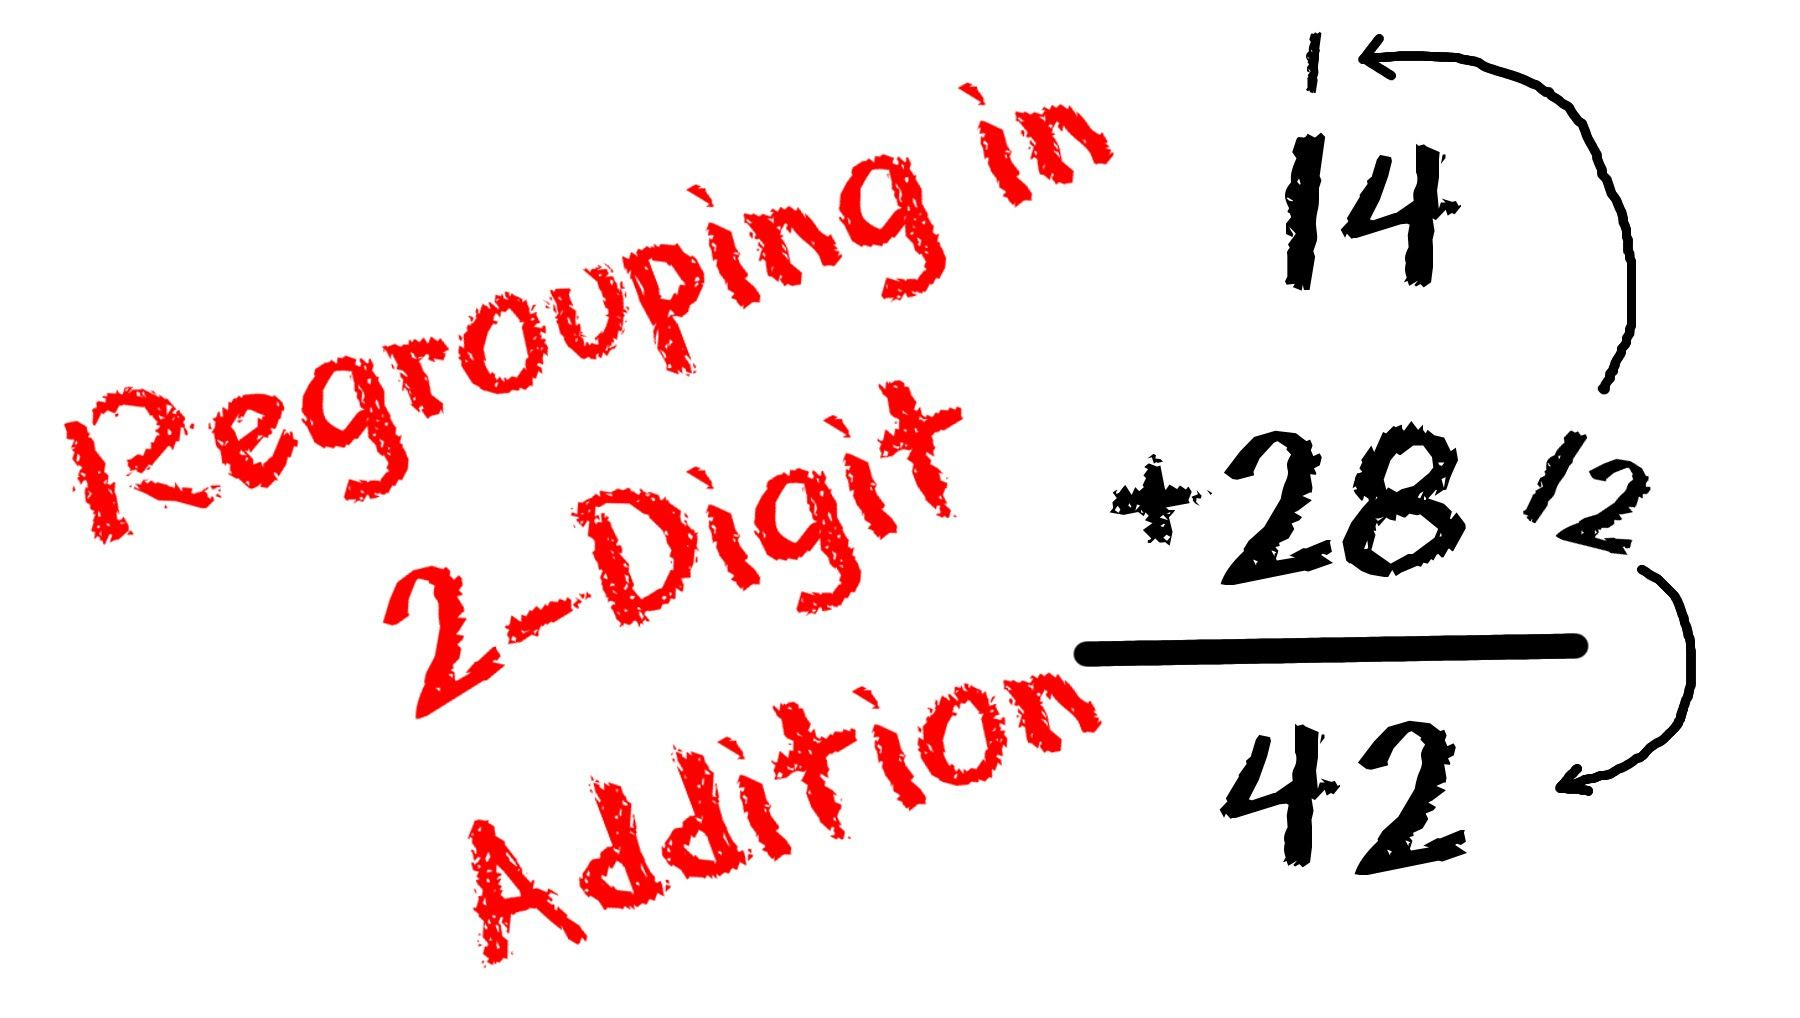 2 Digit Addition With Regrouping Carrying And Place Value For Kids Freeschool Regrouping Apple Math Place Values Mathantics addition with regrouping